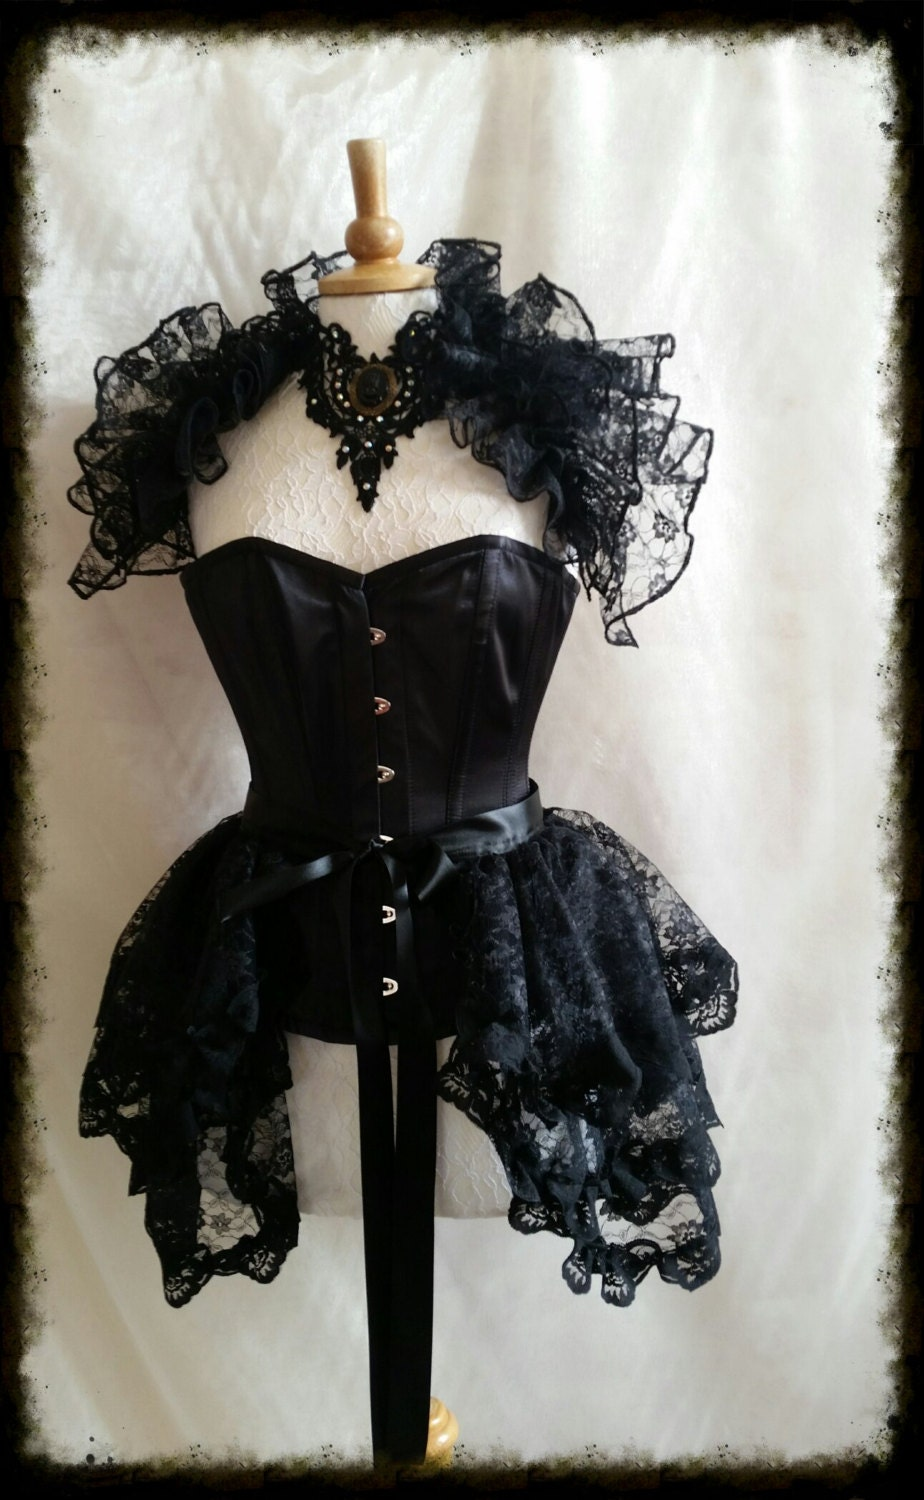 LACE EBONETTA Steampunk Opulent Opera Shrug Burlesque Gothic LUXE Decadant By Gothic Burlesque